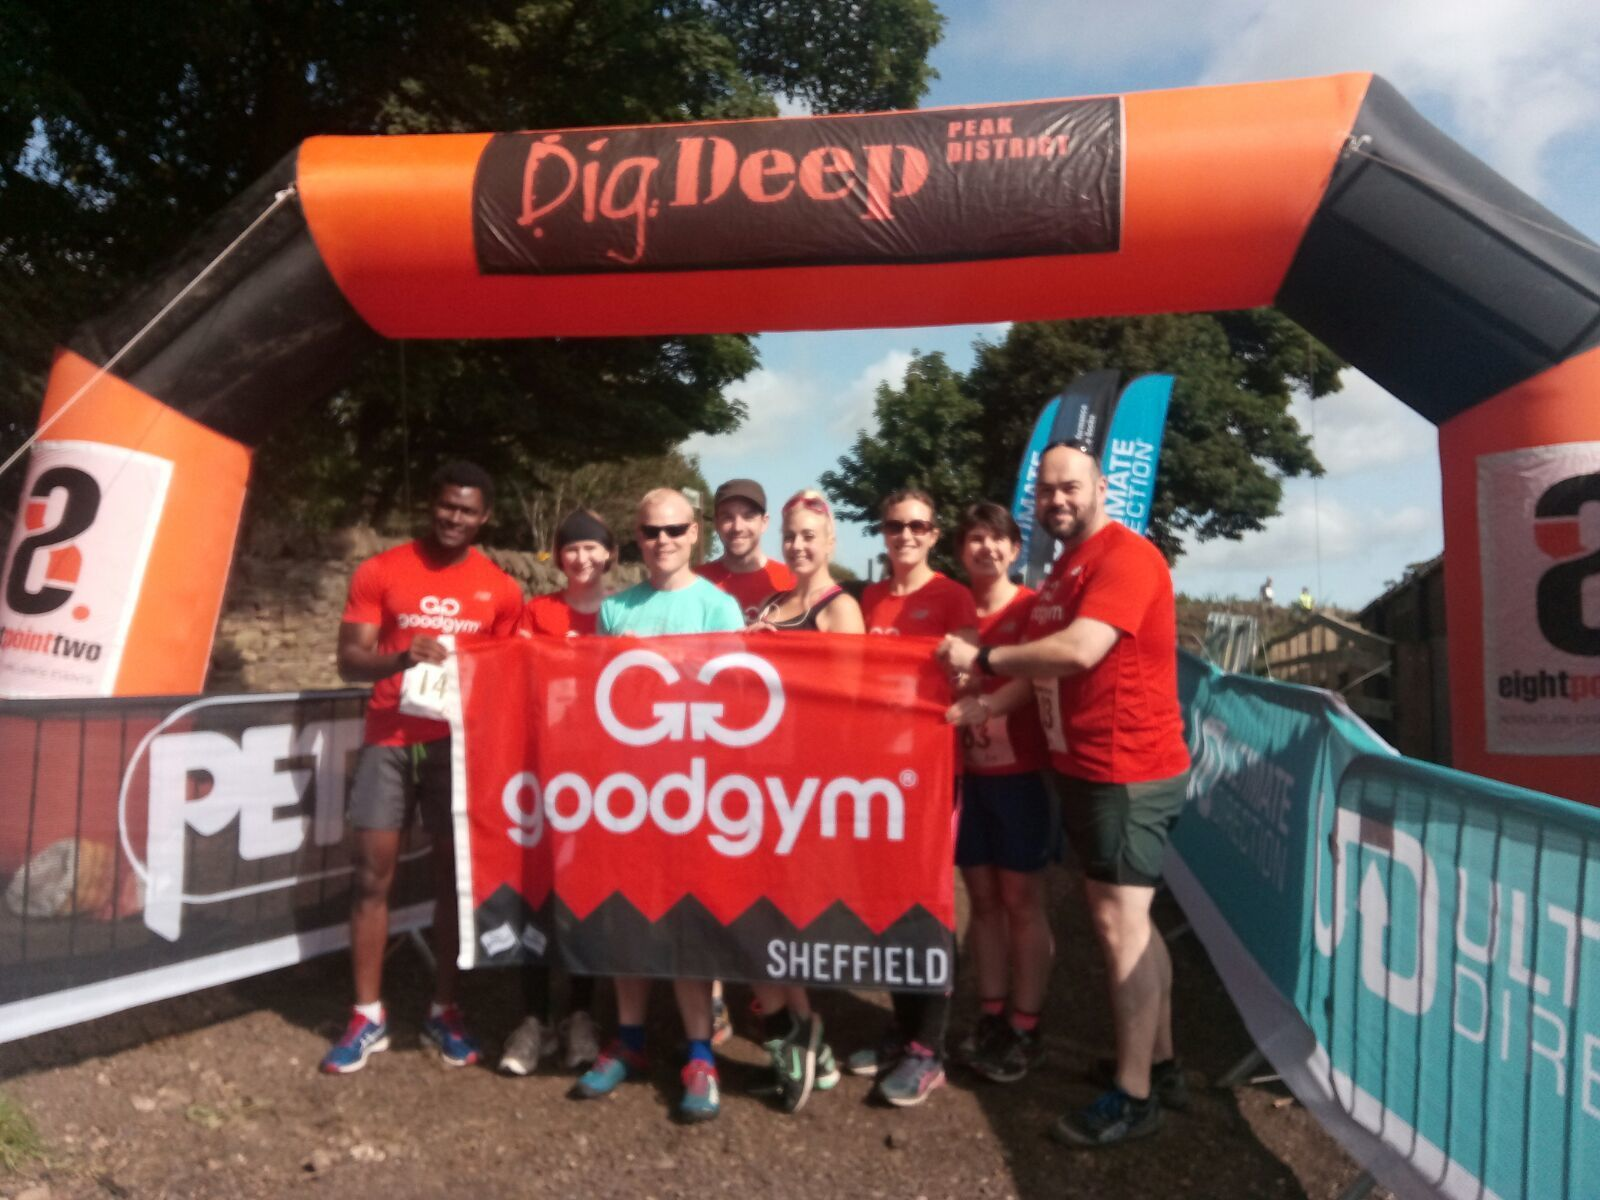 Over the hills and far away, GoodGym Sheffield ran 10k!